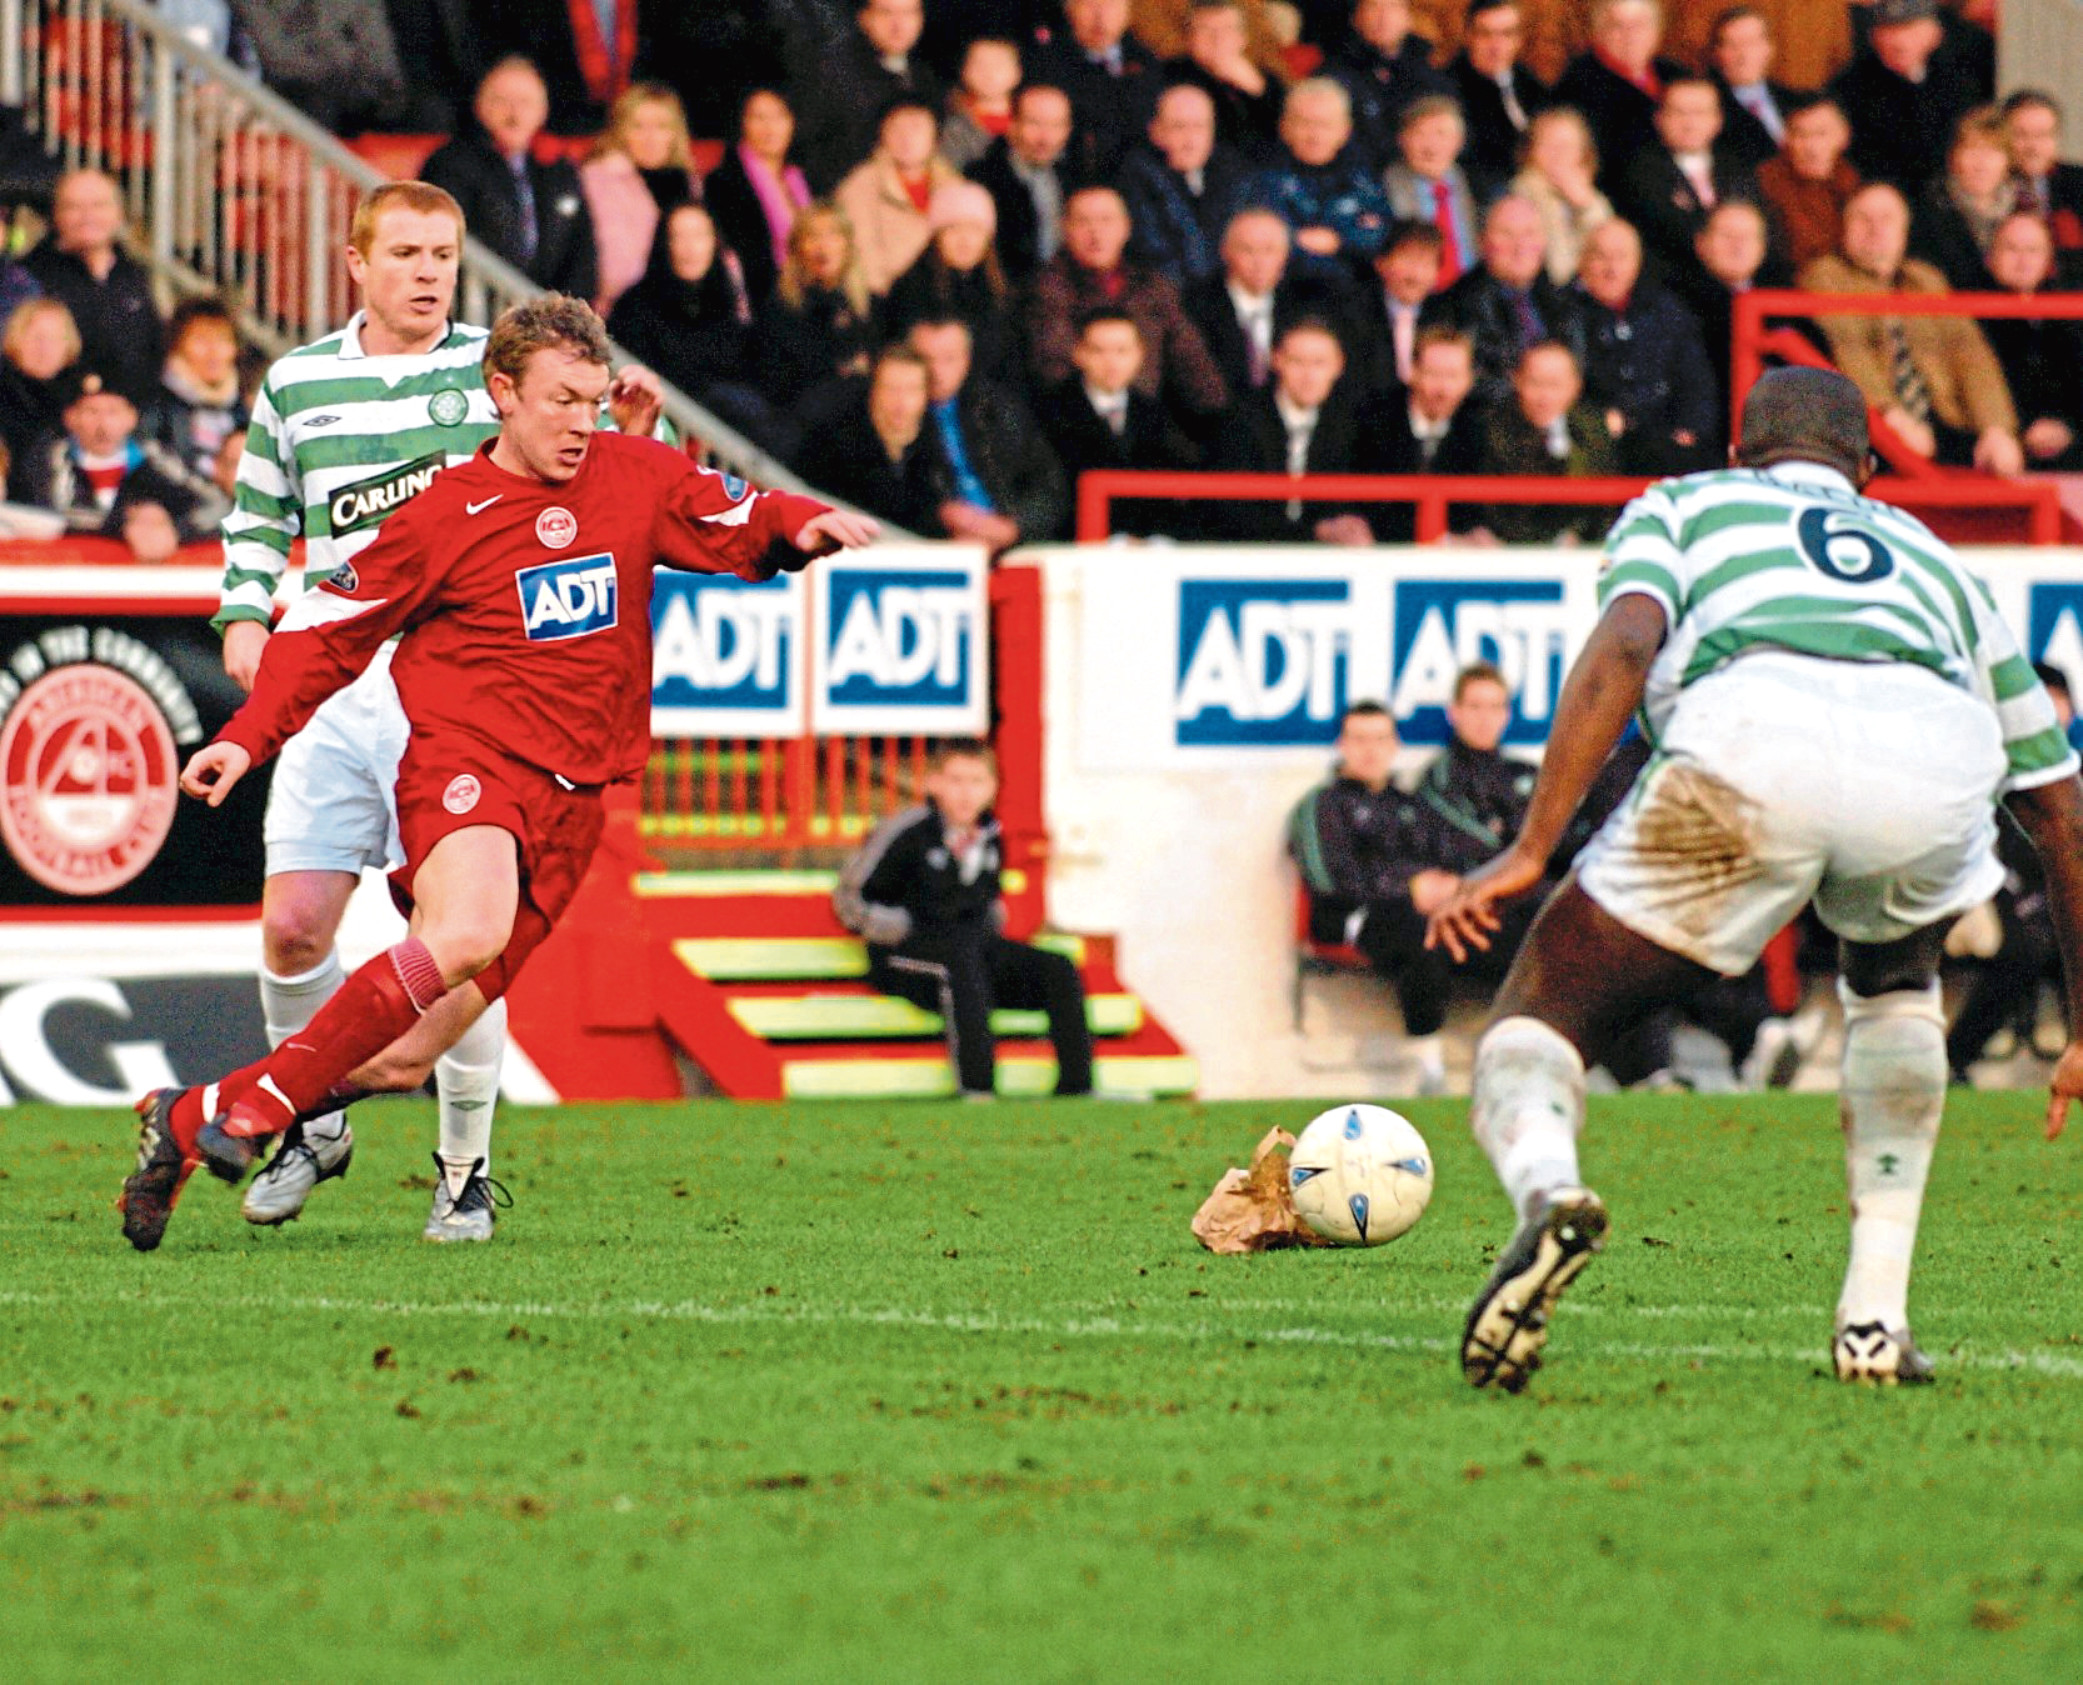 Steve Tosh in his Aberdeen days, playing against Celtic.